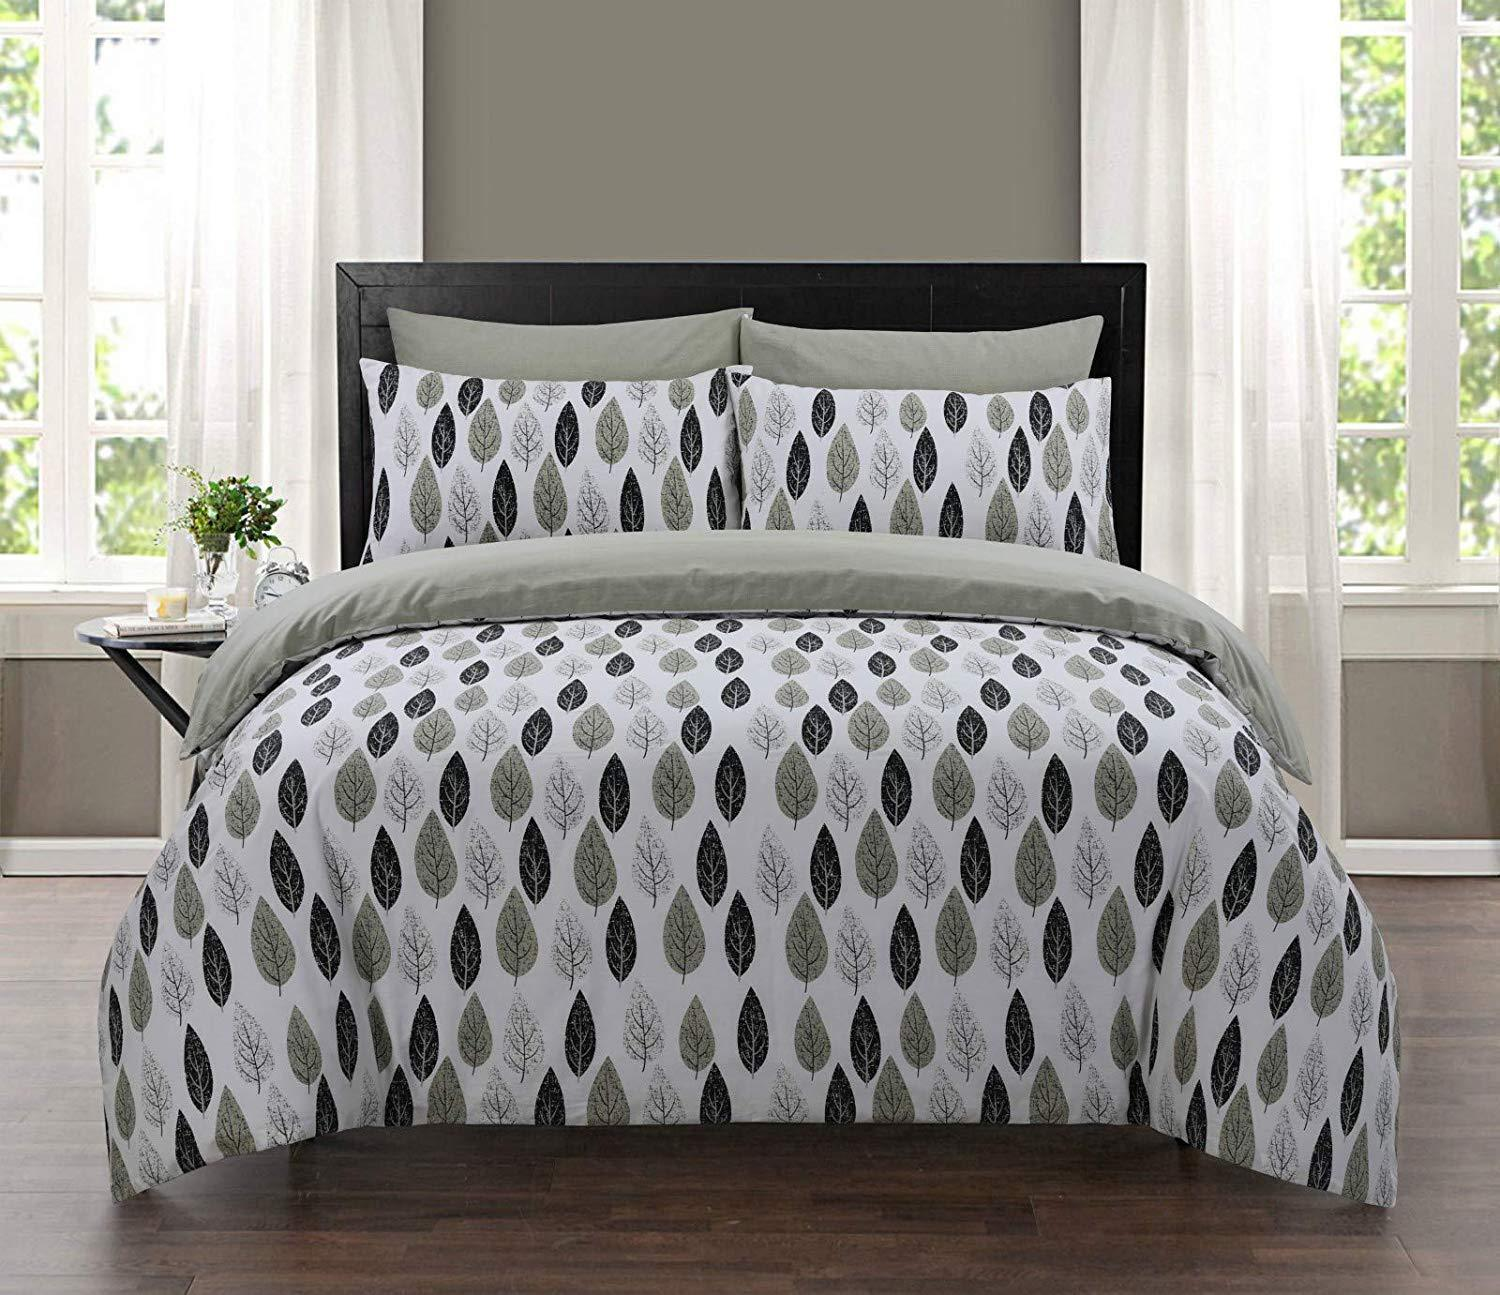 100% High Quality Cotton King Size Bedding Set Duvet Quilt Cover And Pillowcases